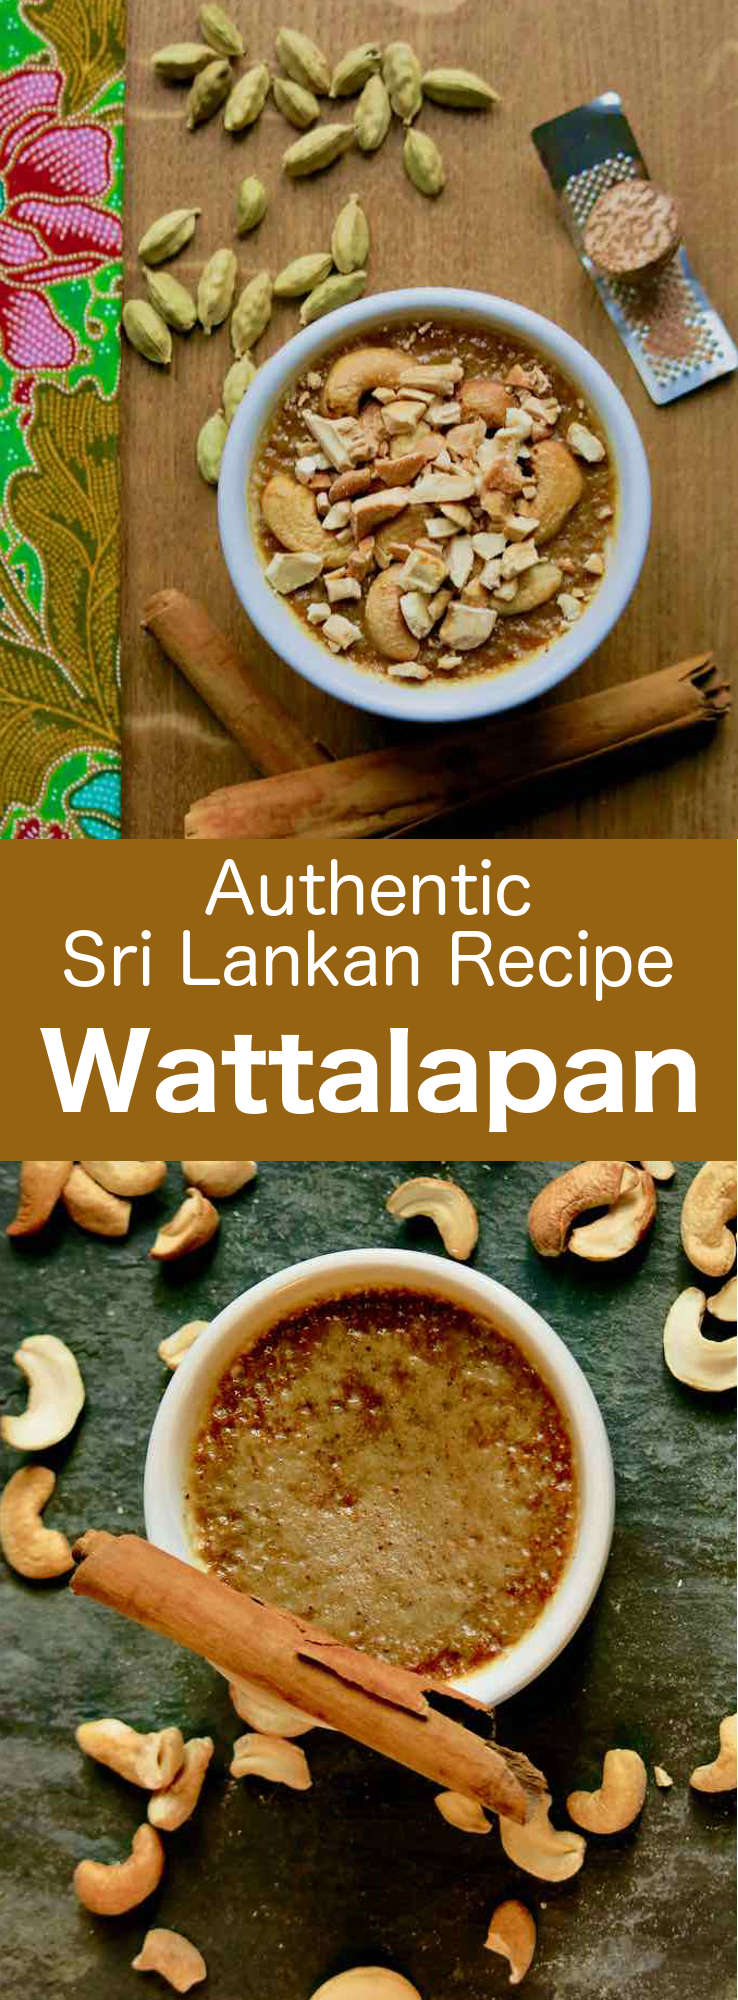 Wattalapan, one of the most popular desserts of Sri Lanka, is a sort of relatively dense flan with an incredibly silky texture, whose scents reflect the exoticism and cultural blend of this island. #SriLanka #SriLankanCuisine #SriLankanDessert #Dessert #DessertRecipe #SriLankanRecipe #WorldCuisine #196flavors